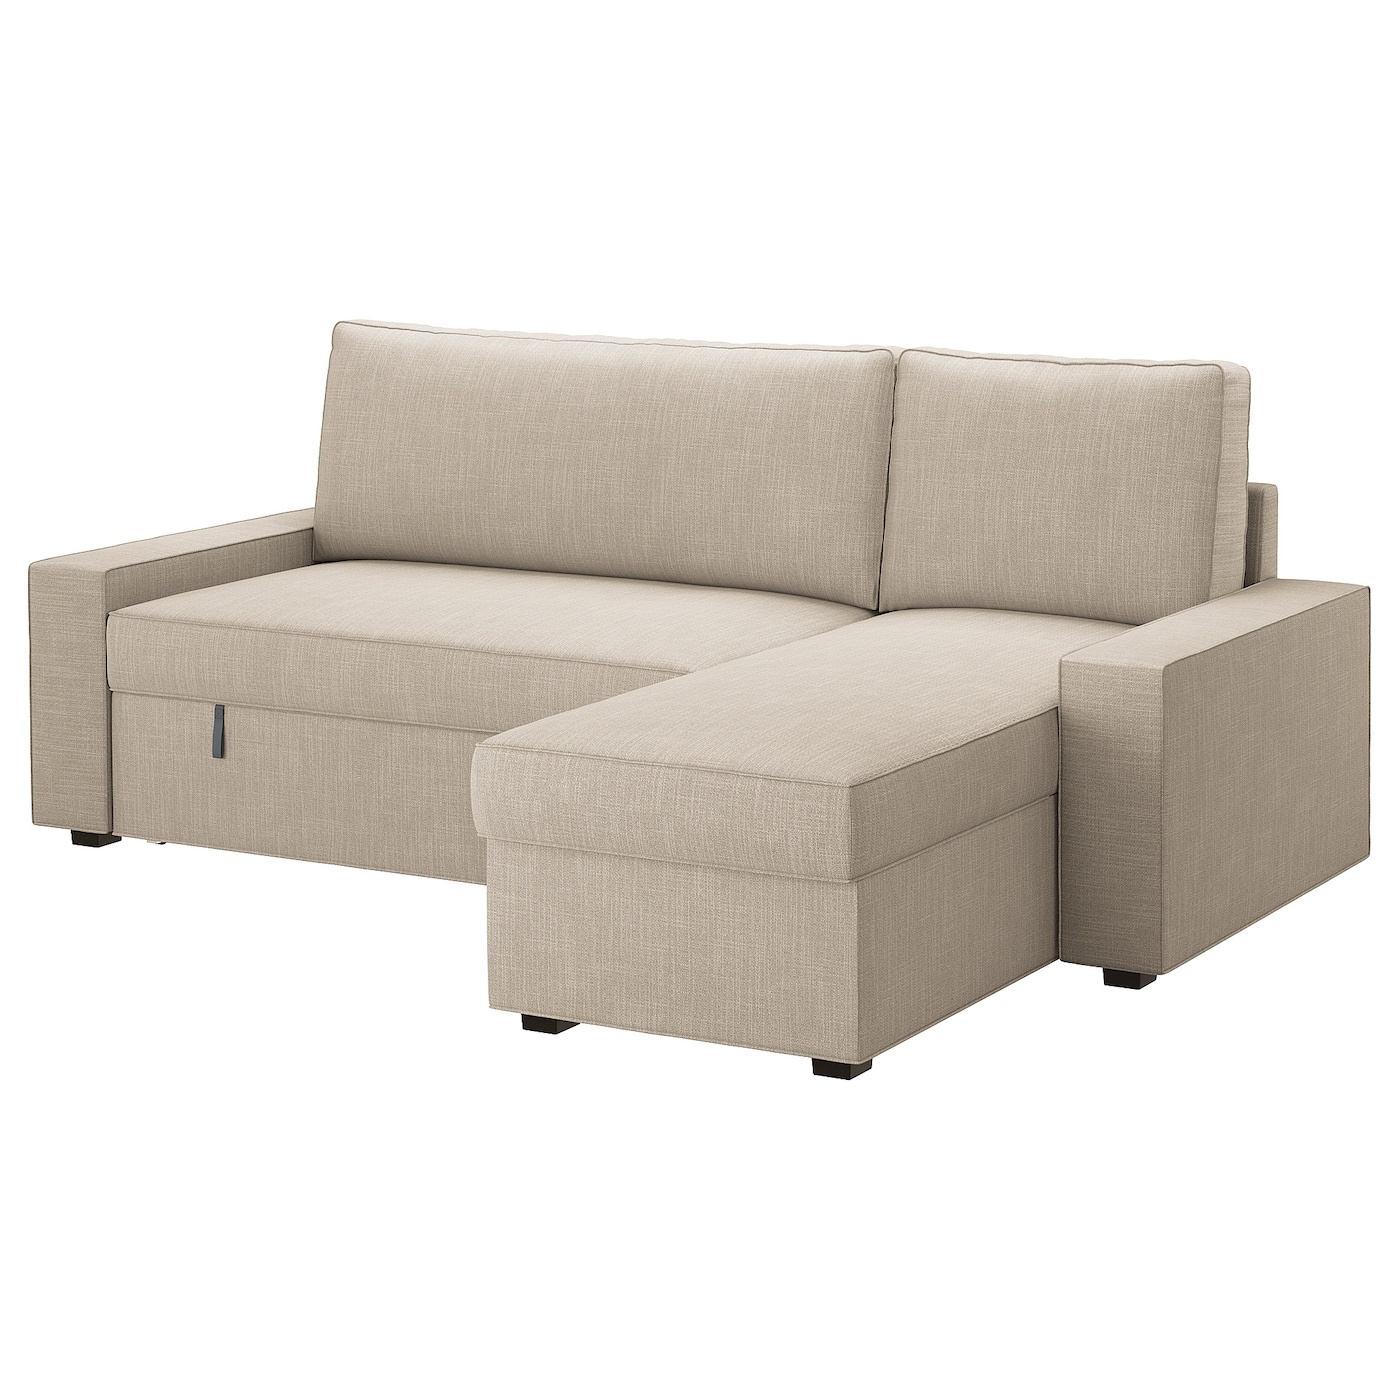 Vilasund cover sofa bed with chaise longue hillared beige for Chaise couch cover